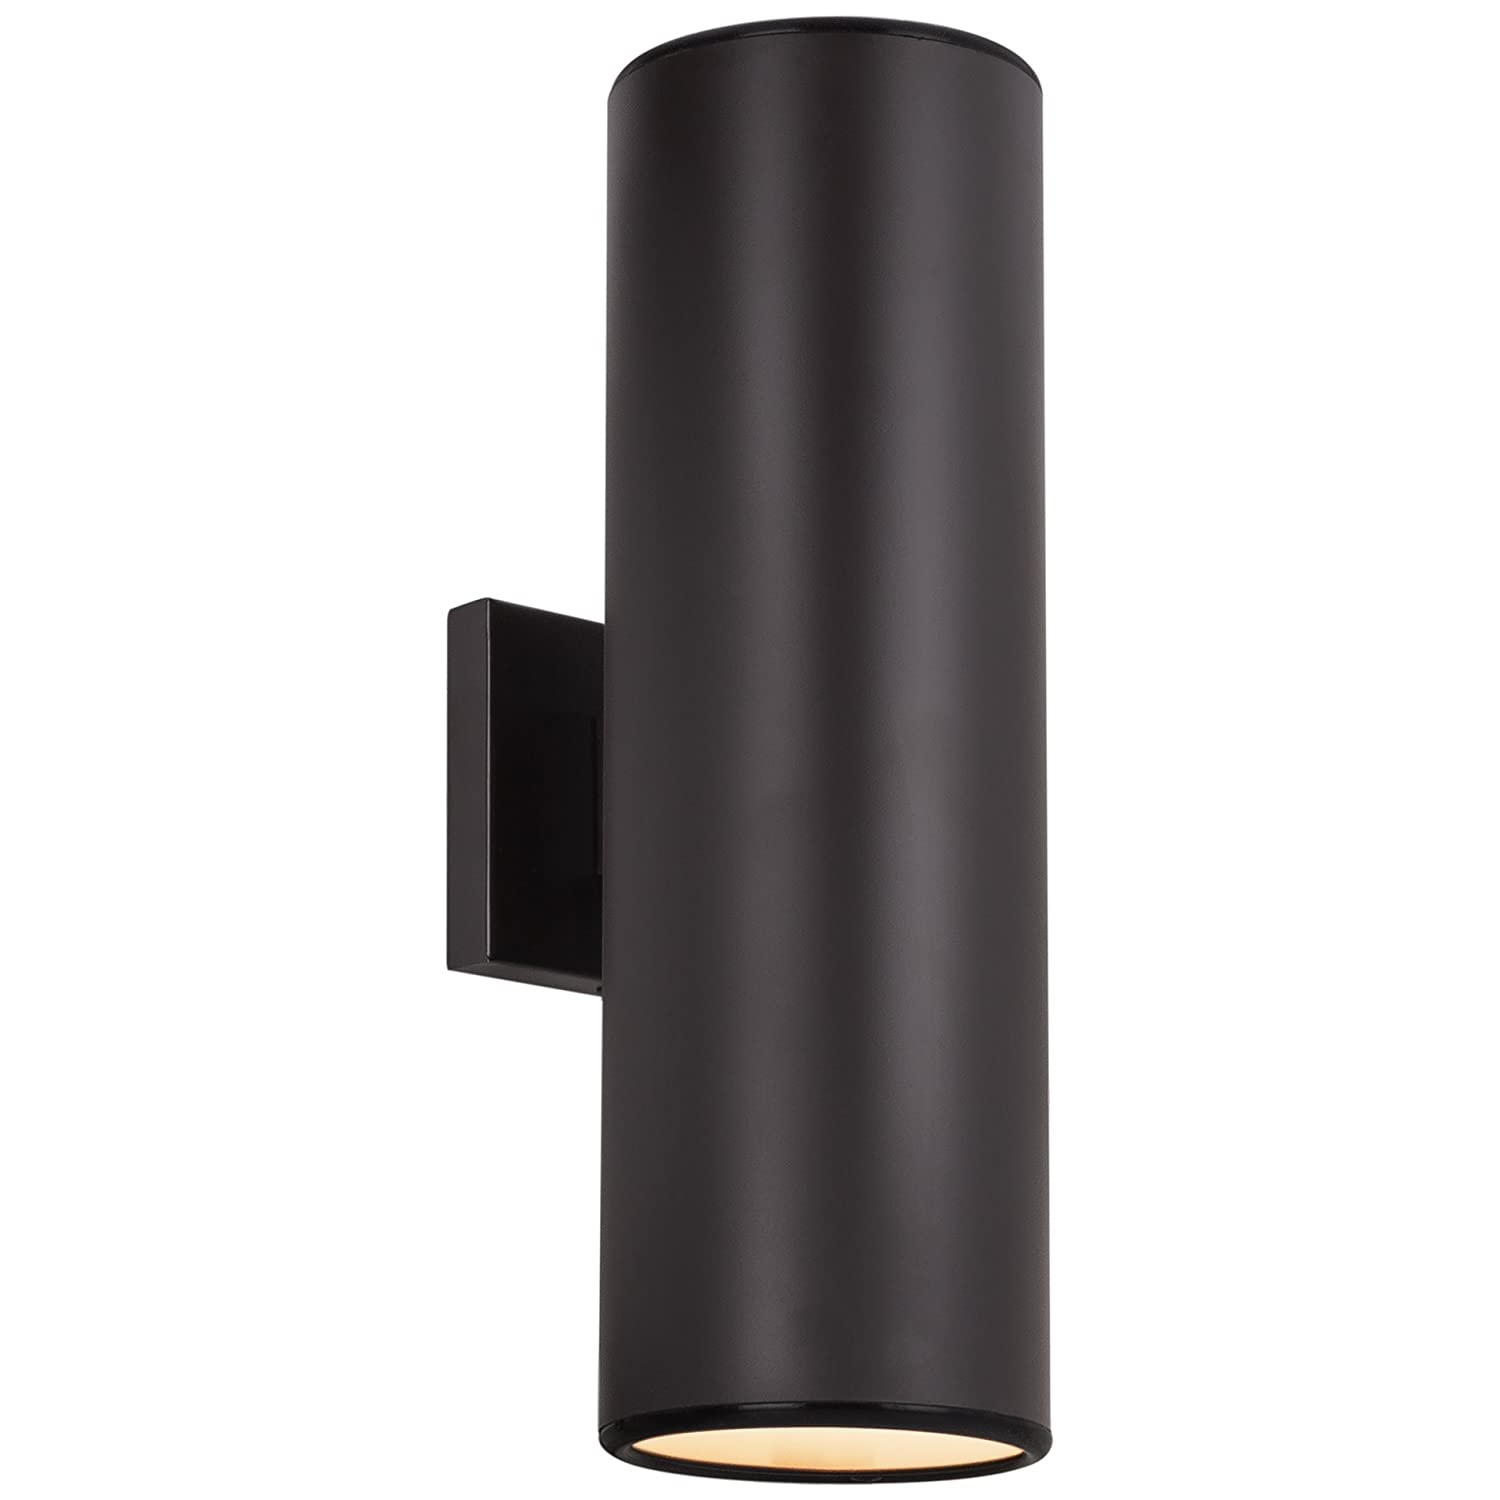 "Kira Home Enzo 16"" 2-Light Modern Metal Light/Wall Sconce, for Use in Damp Location Only, Oil Rubbed Bronze Finish"